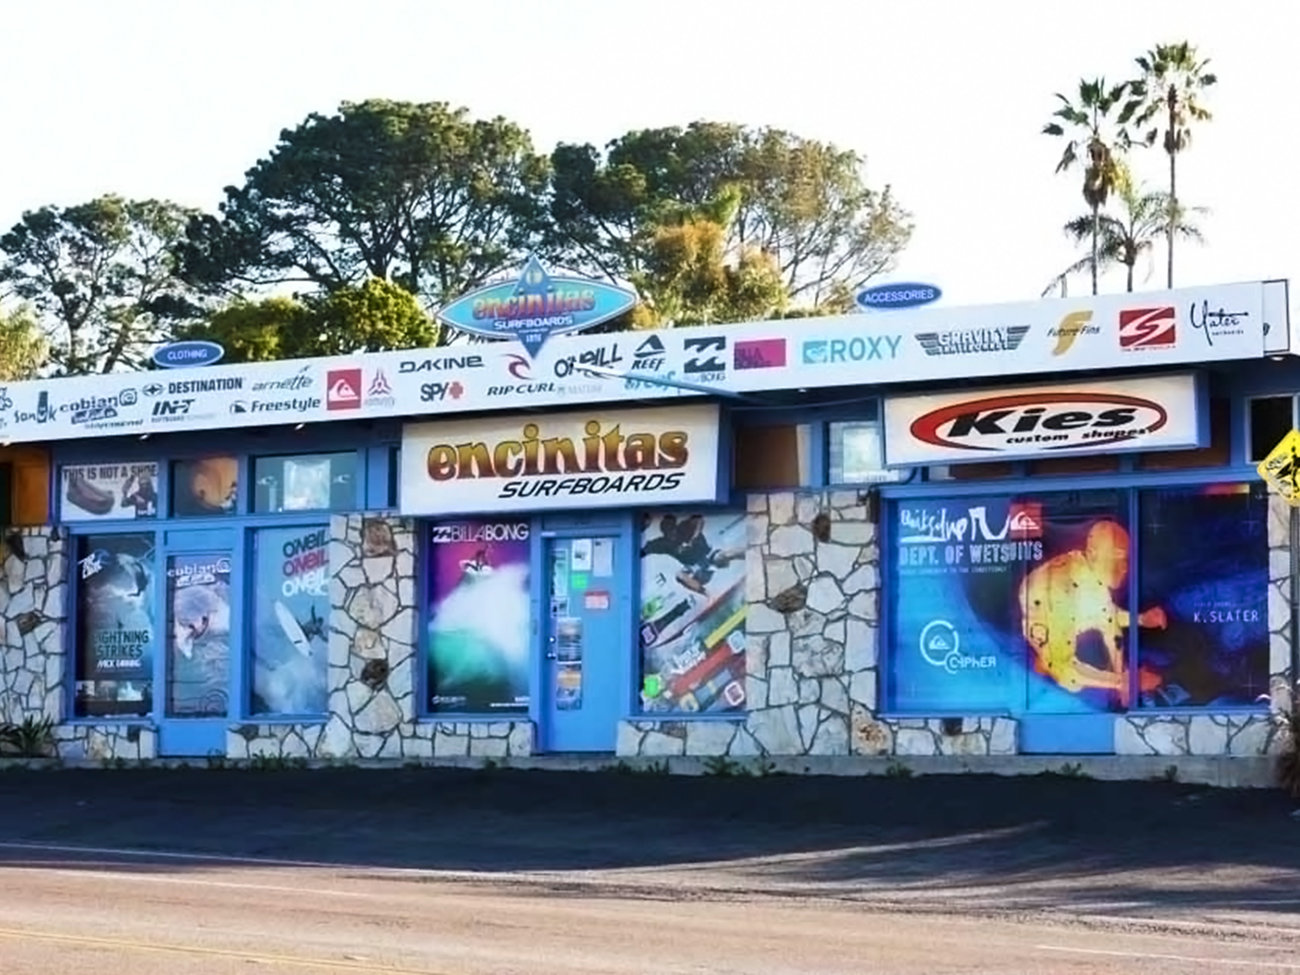 Encinitas Surfboards Store in San Diego